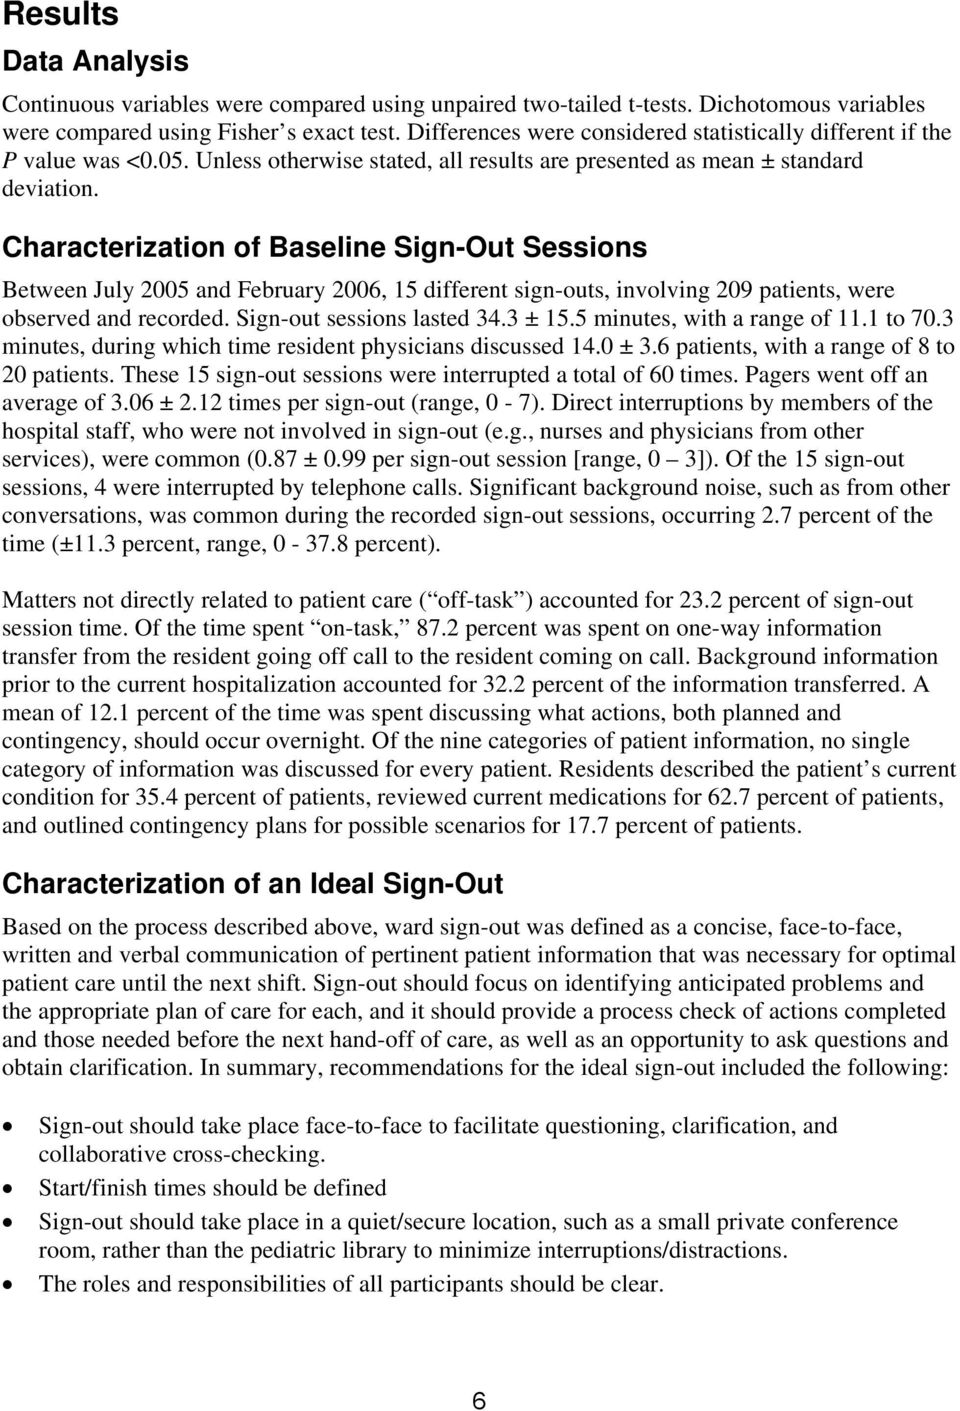 Characterization of Baseline Sign-Out Sessions Between July 2005 and February 2006, 15 different sign-outs, involving 209 patients, were observed and recorded. Sign-out sessions lasted 34.3 ± 15.